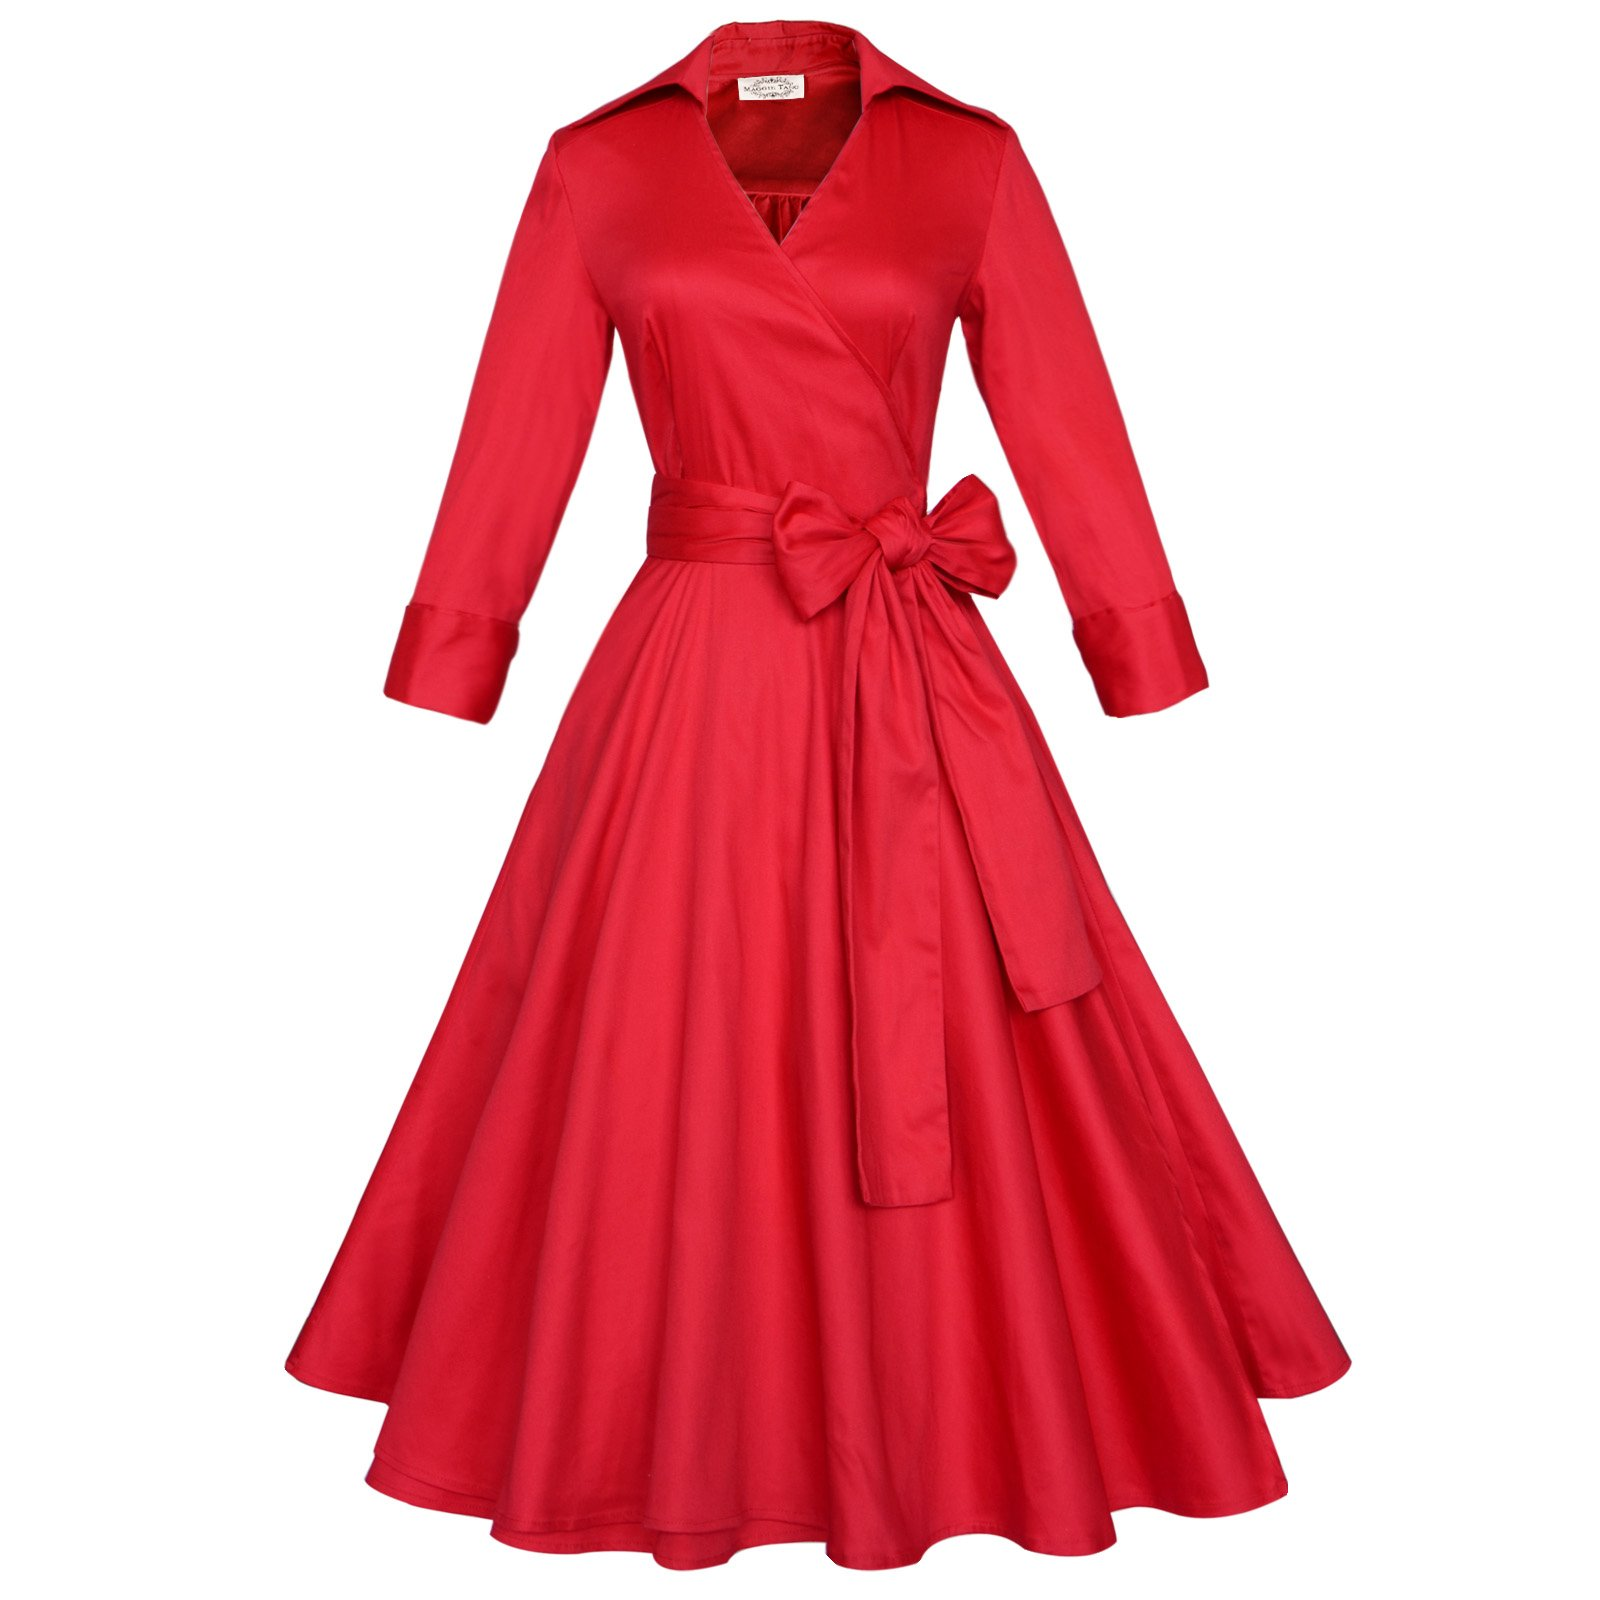 Maggie Tang 3/4 Sleeve 50s 60s Vintage Swing Rockabilly Dress Red Size M